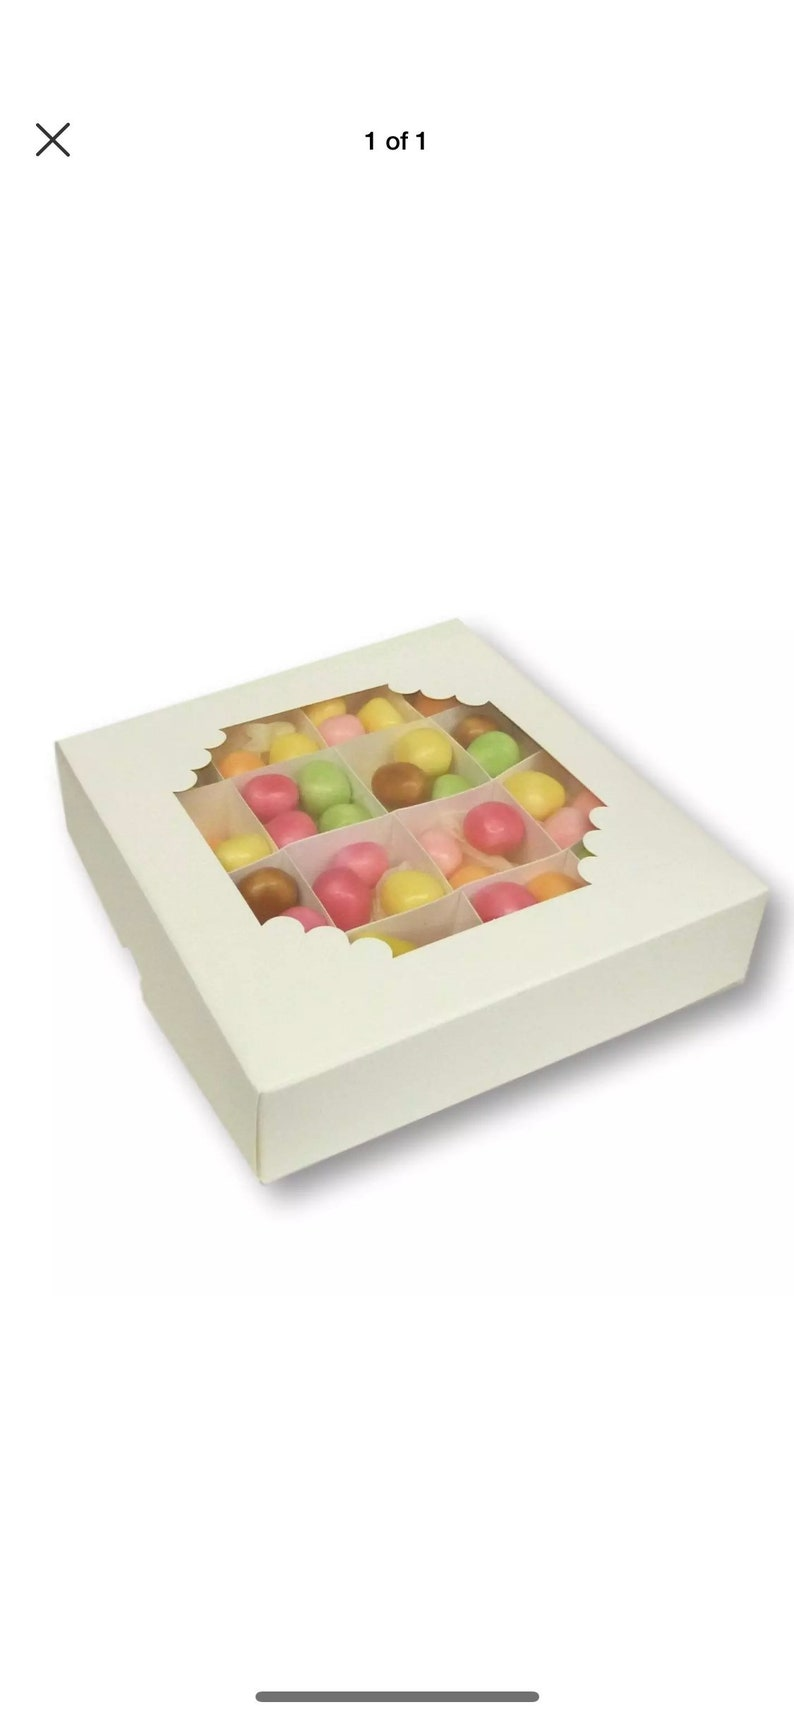 Jewellery Display Boxes Sweet Boxes Pack of 10 6 x 6 White Chocolate Gift Boxes Cakes,